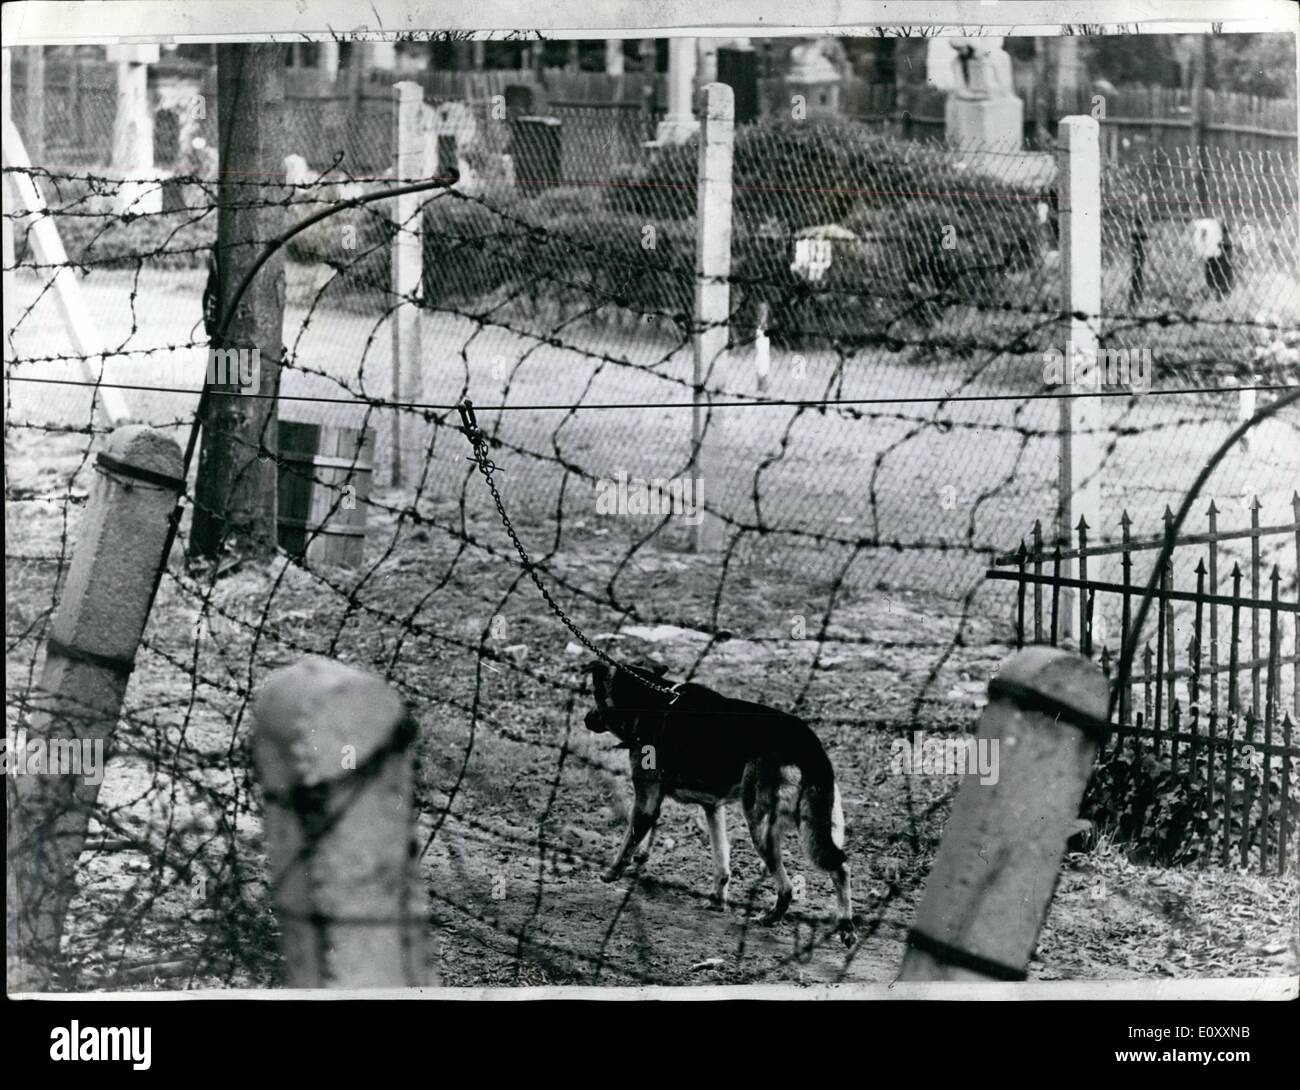 Jan 01 1968 The Berlin Wall Photo Shows A Familiar Sight To